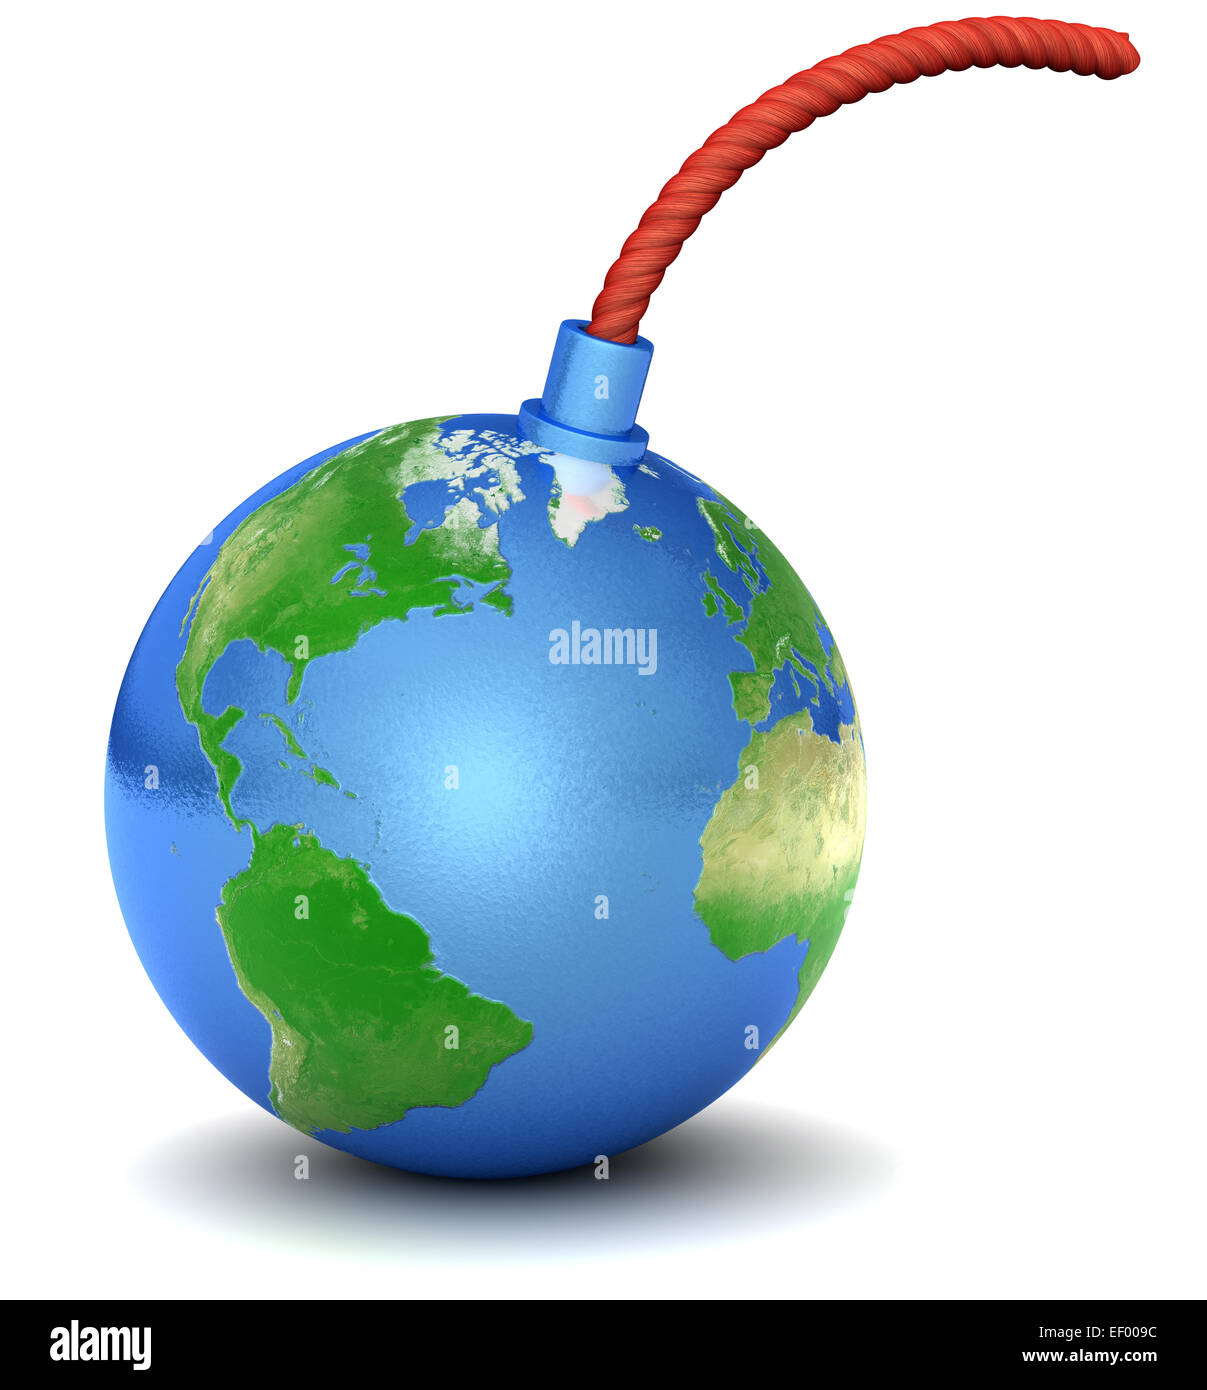 Bomb with Earth texture. - Stock Image